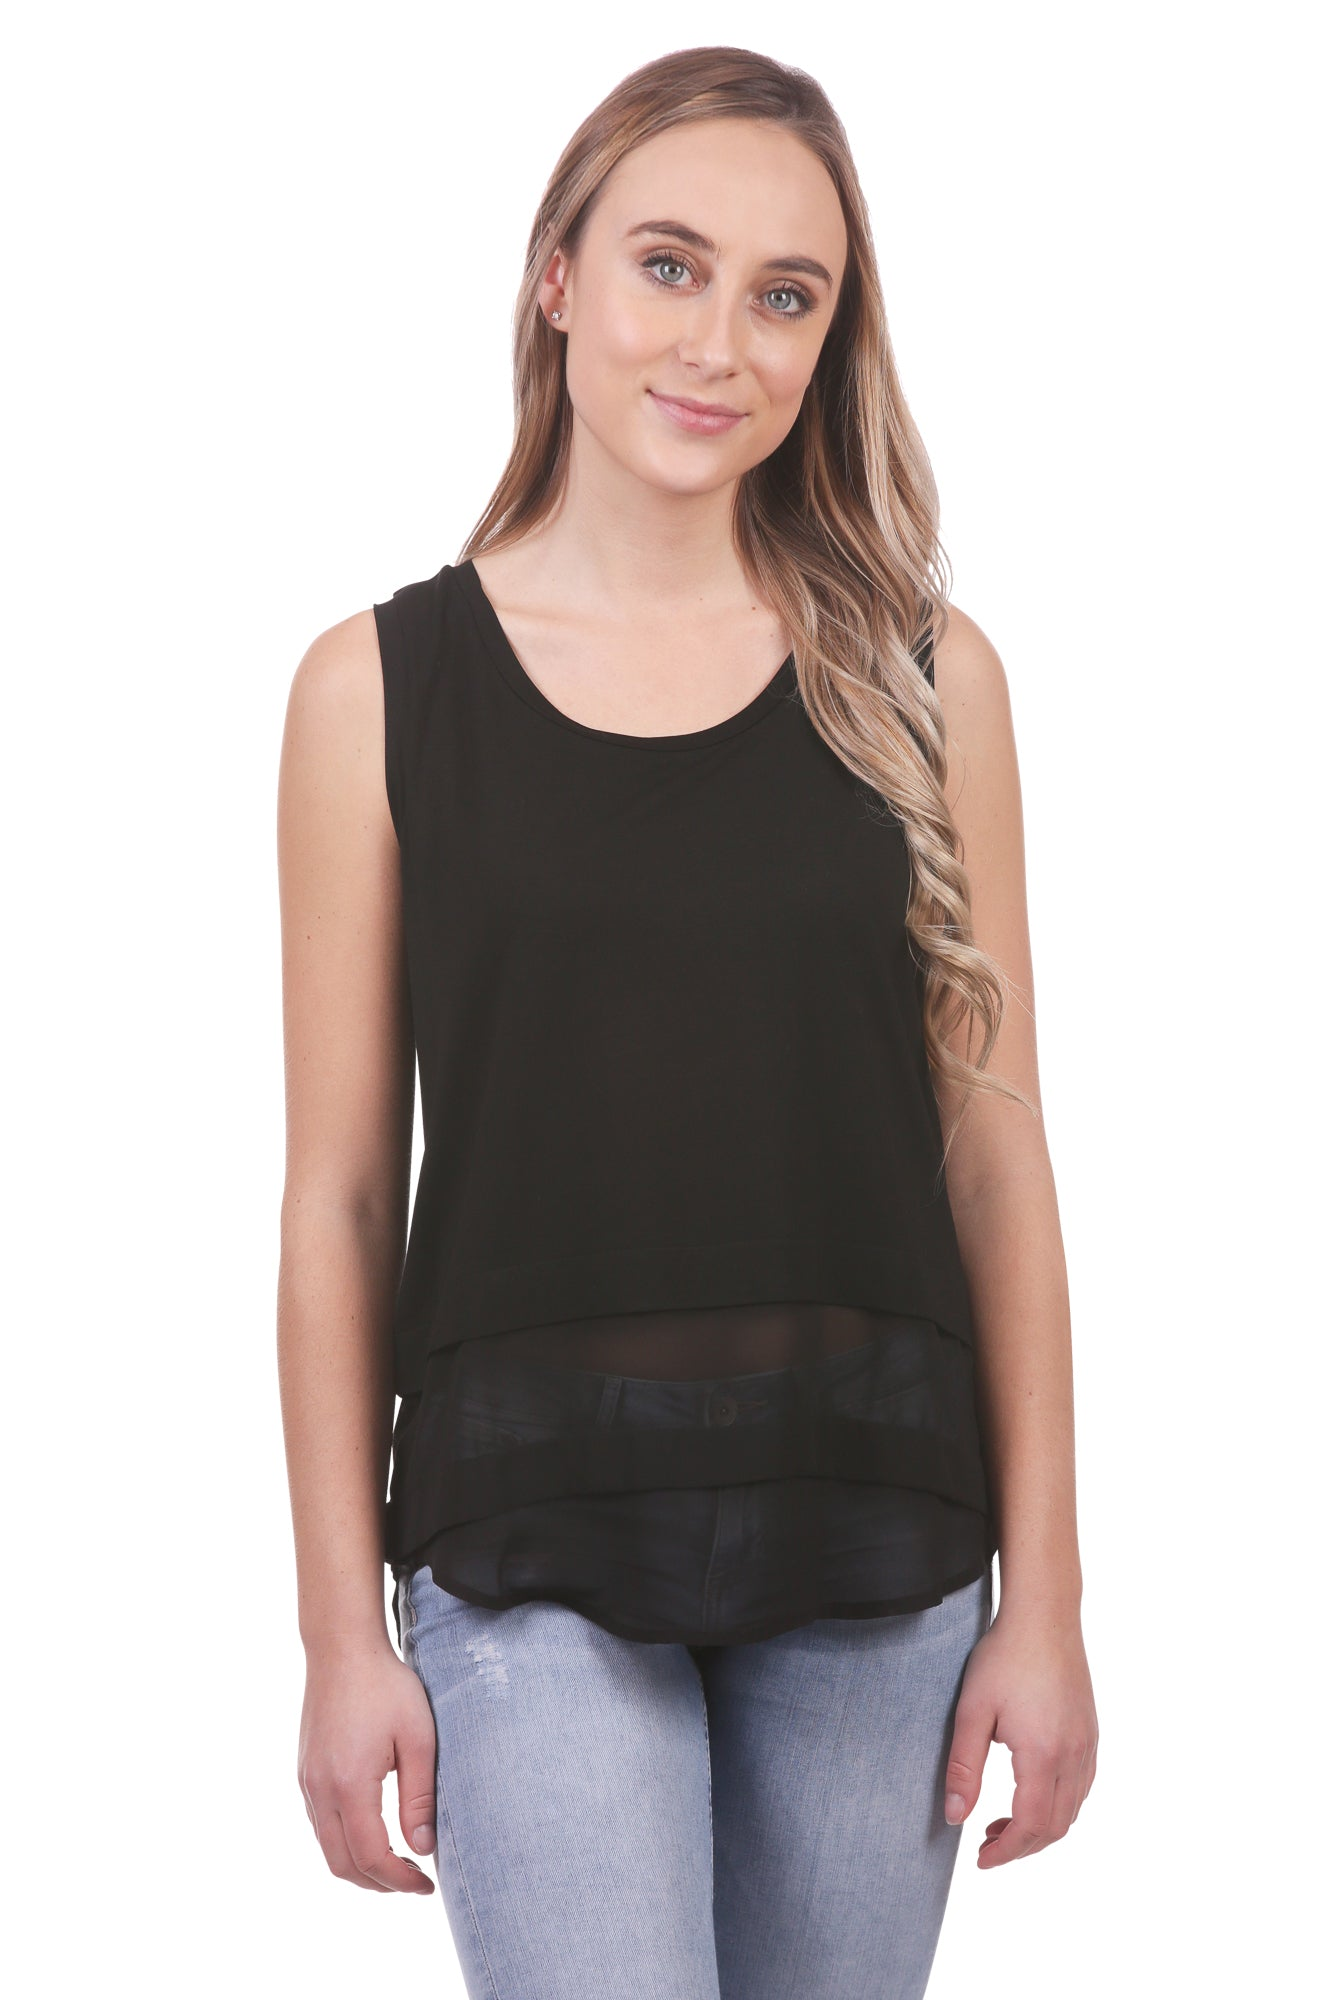 Women's Layered Chiffon Tank | Black and White Crop Tank Top | Neesha